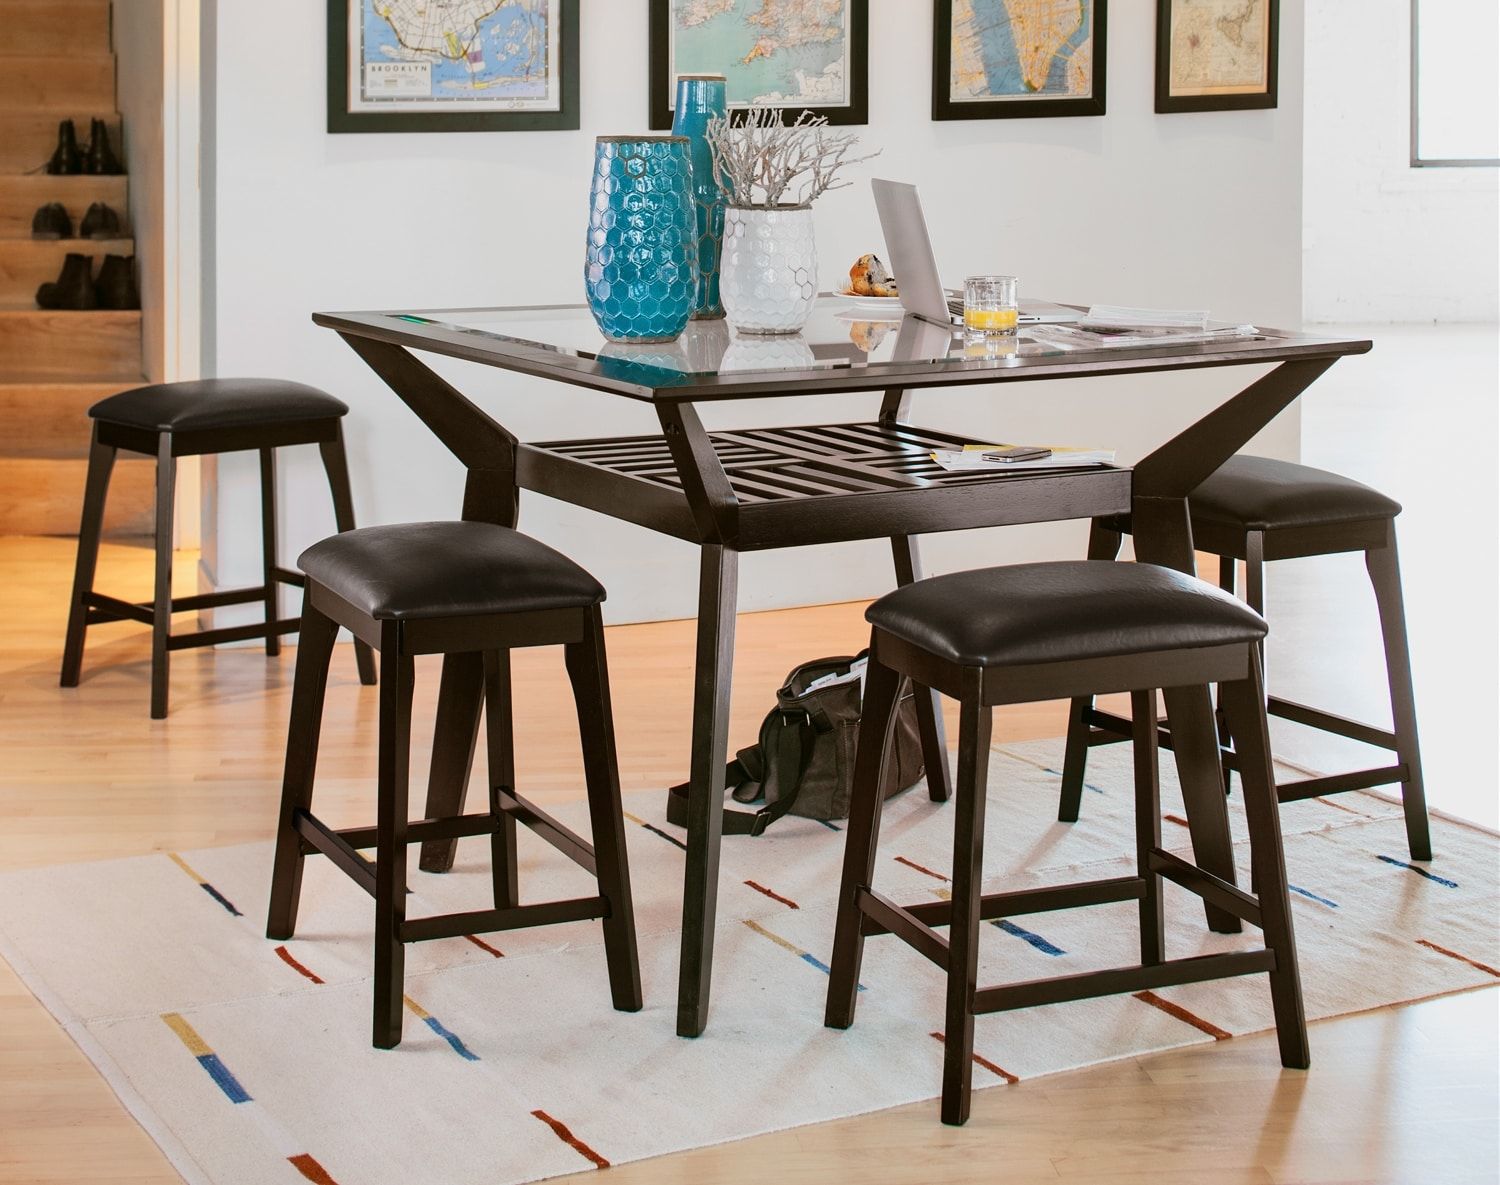 Dining Room Furniture - The Devlin Collection - Counter-Height Table